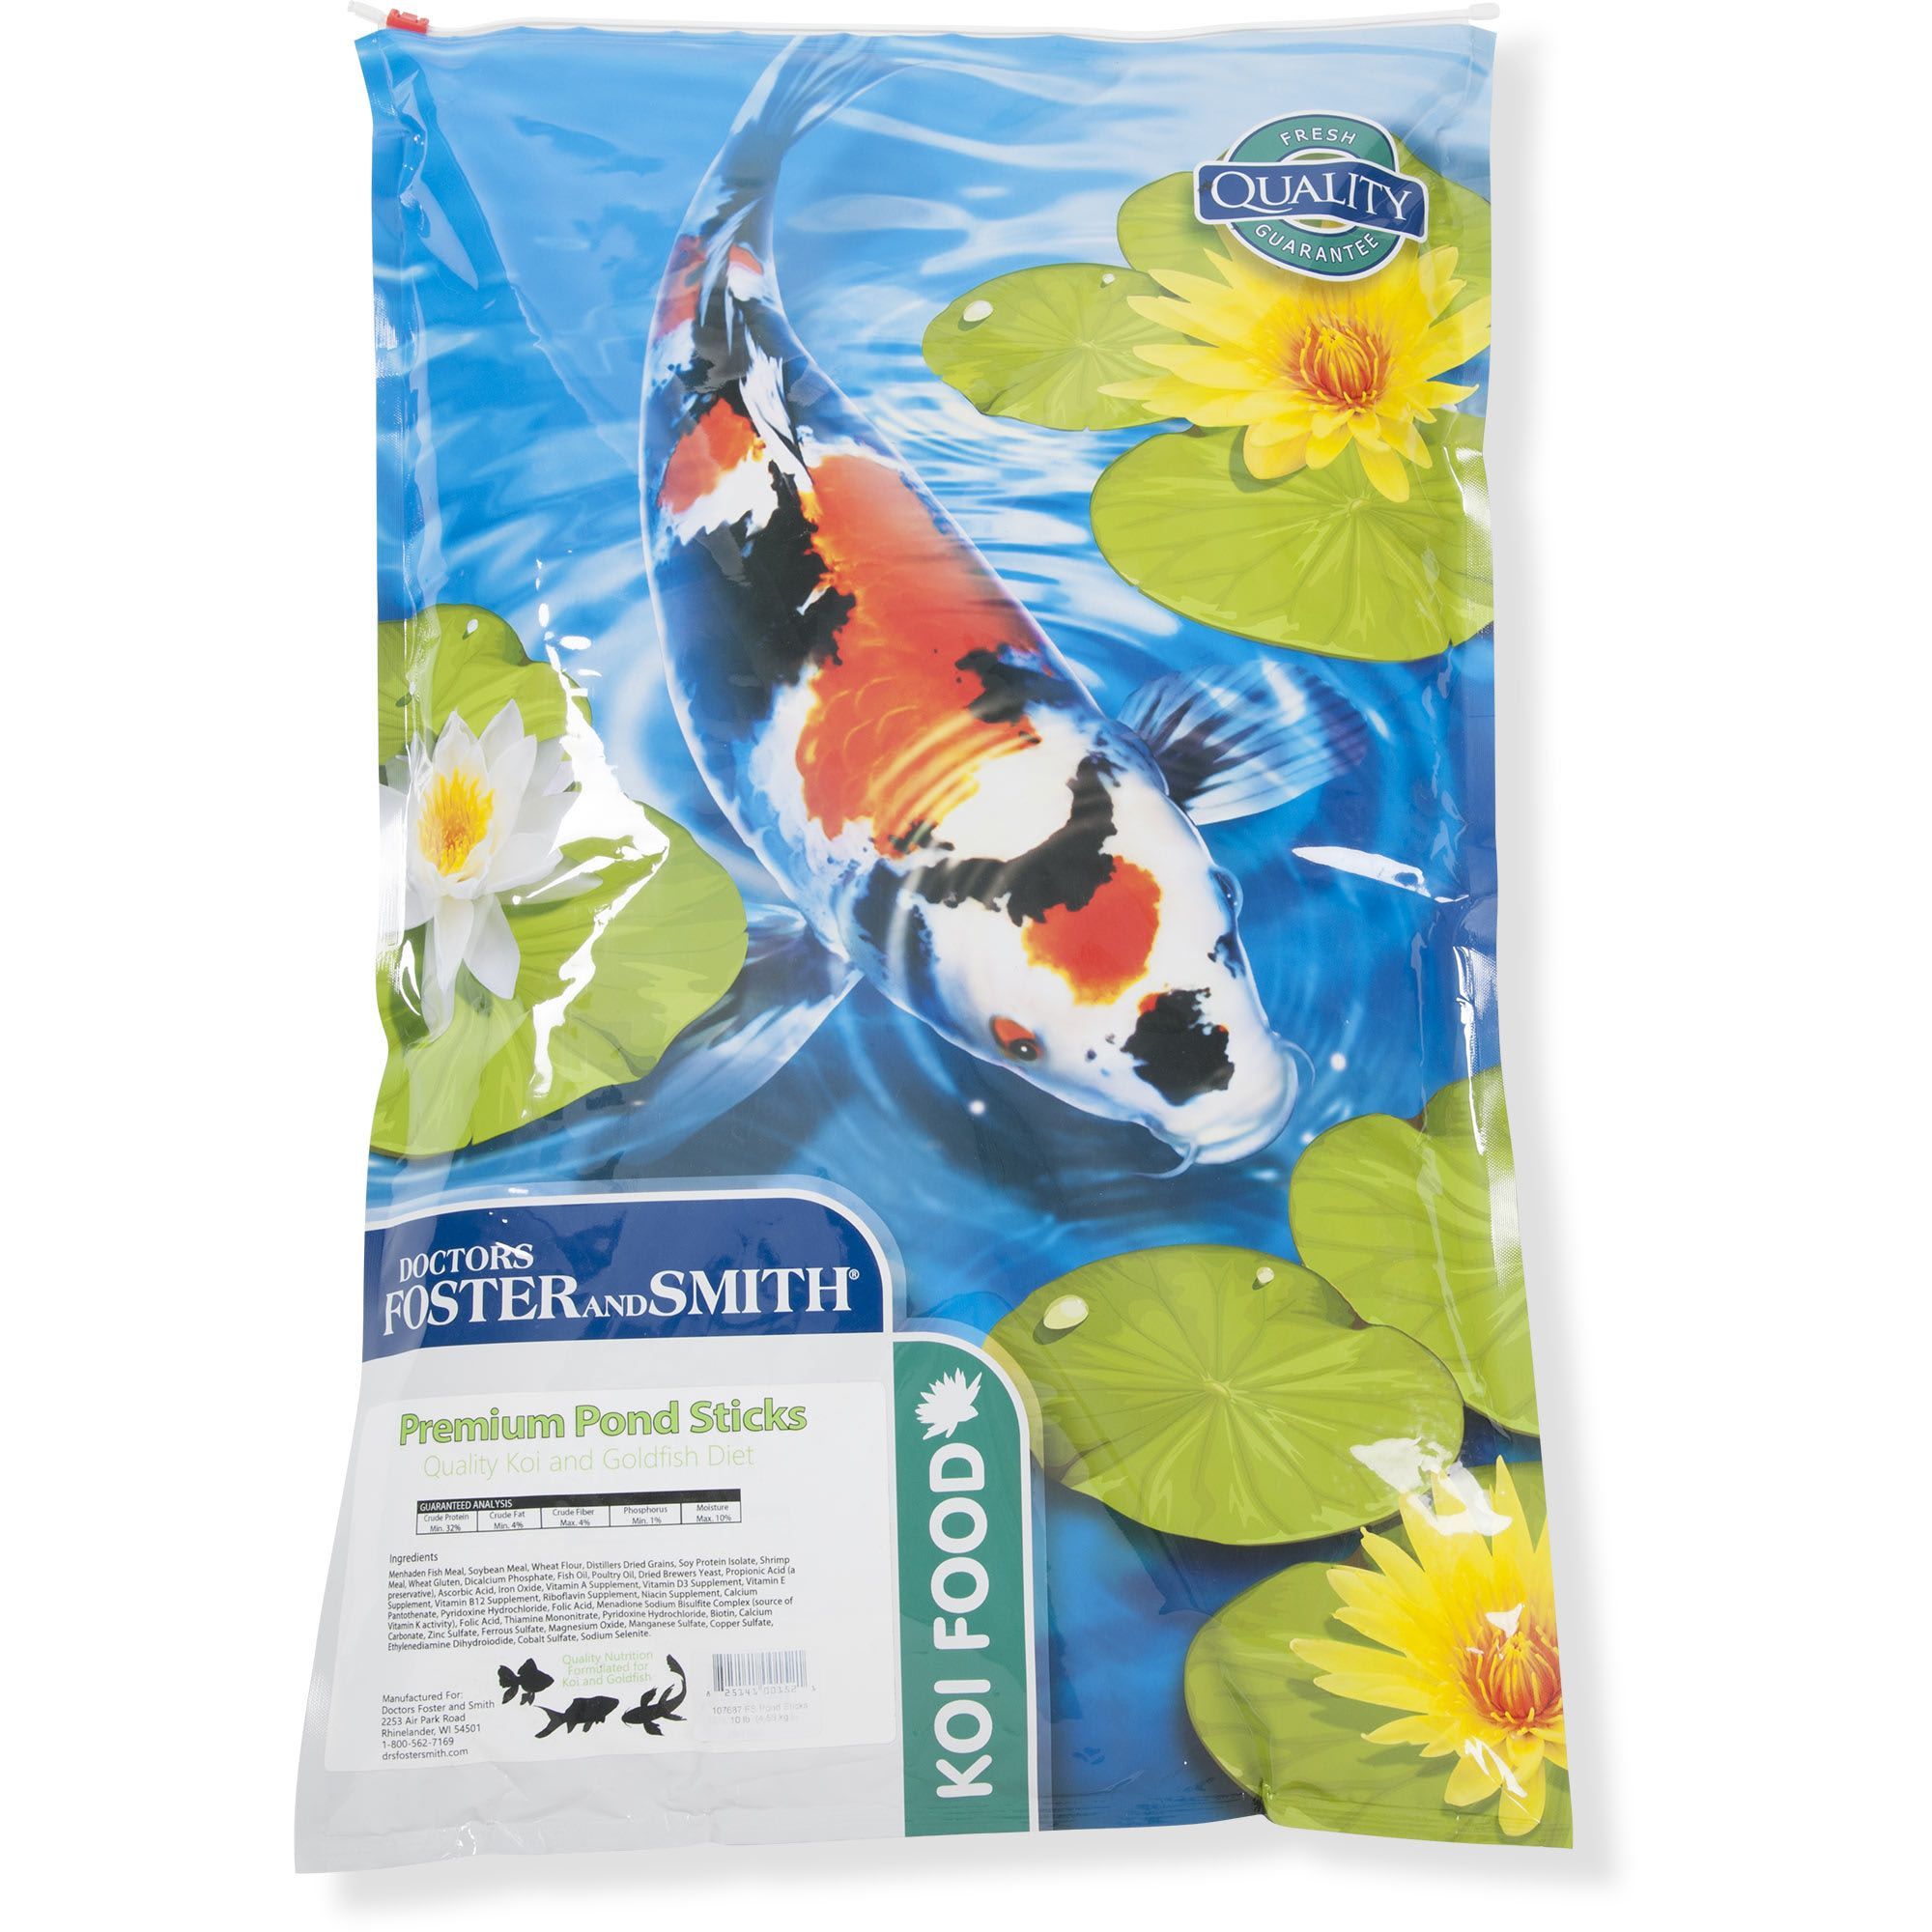 Drs Foster And Smith Premium Pond Sticks Koi And Goldfish Food 10 Lbs Petco In 2020 Goldfish Food Foster And Smith Fish Feed